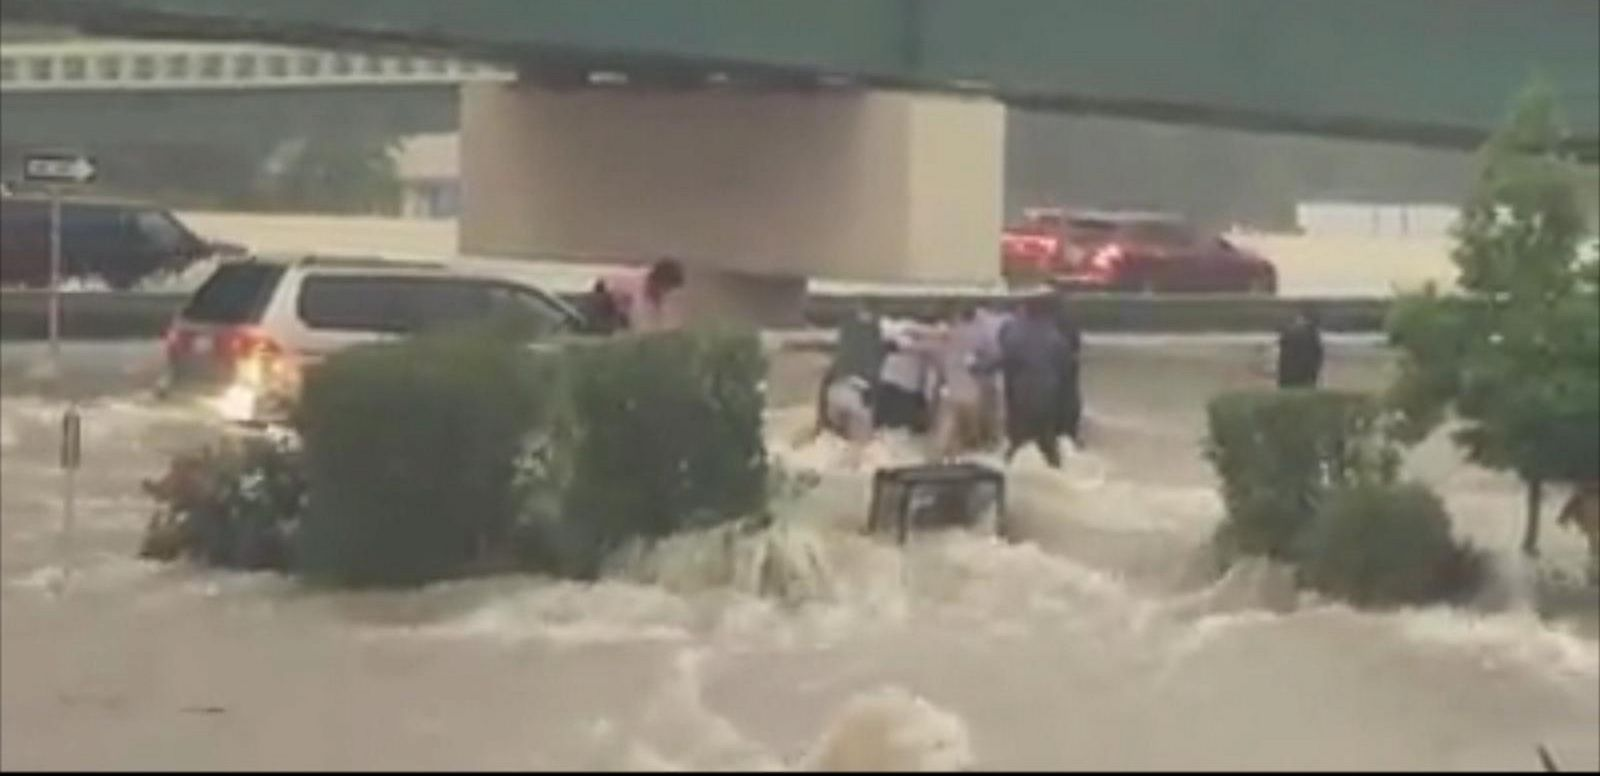 The rescue was caught on camera in Conroe, Texas, north of Houston.